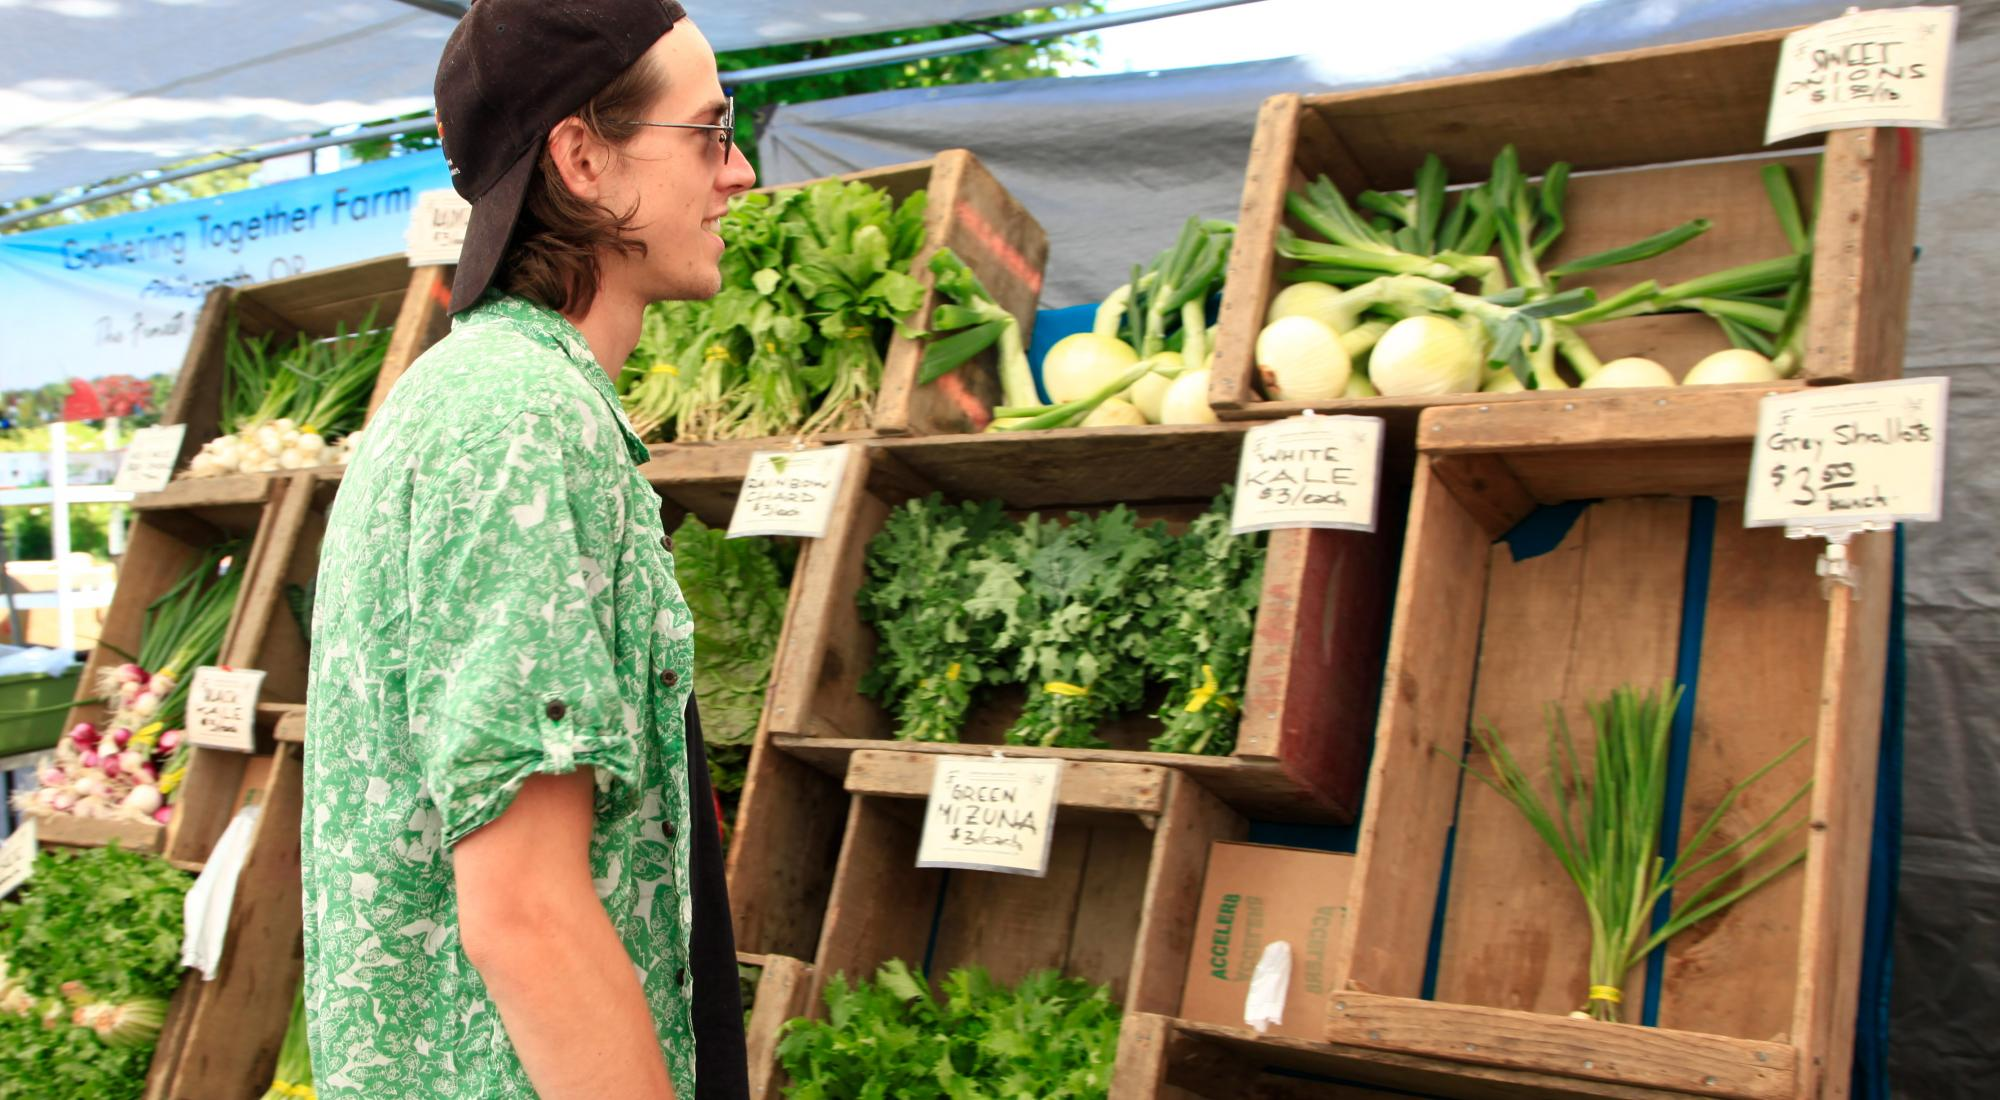 A young man considering produce at the farmer's market